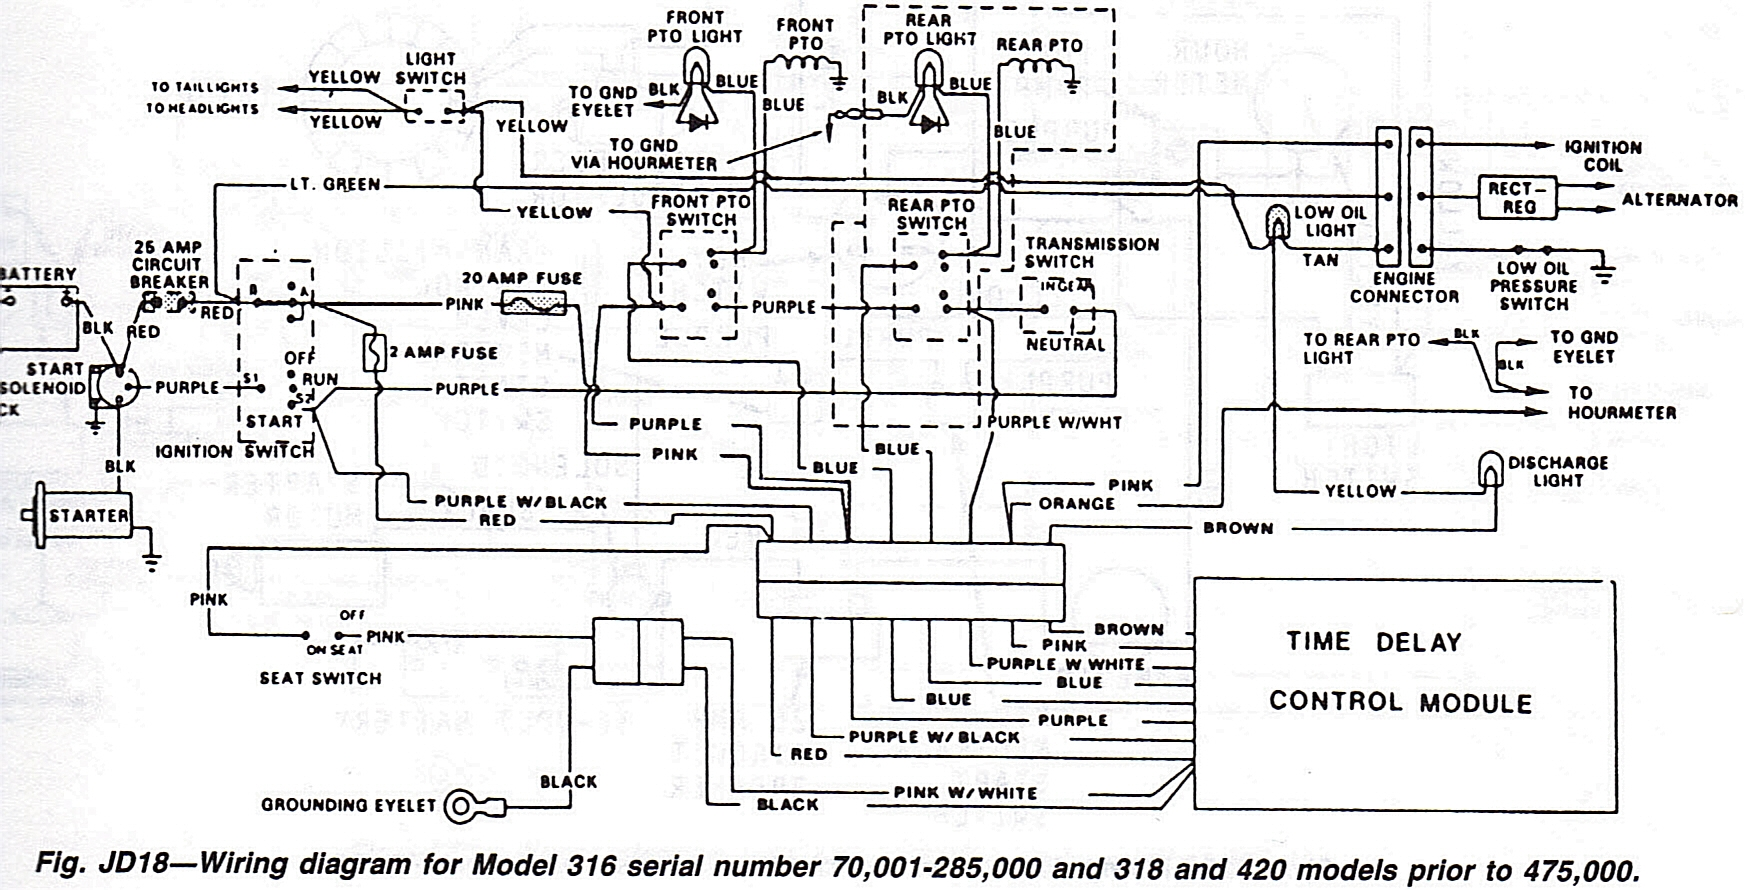 john deere wiring diagram download | free wiring diagram free download af75 wiring diagram free download pgm wiring diagram